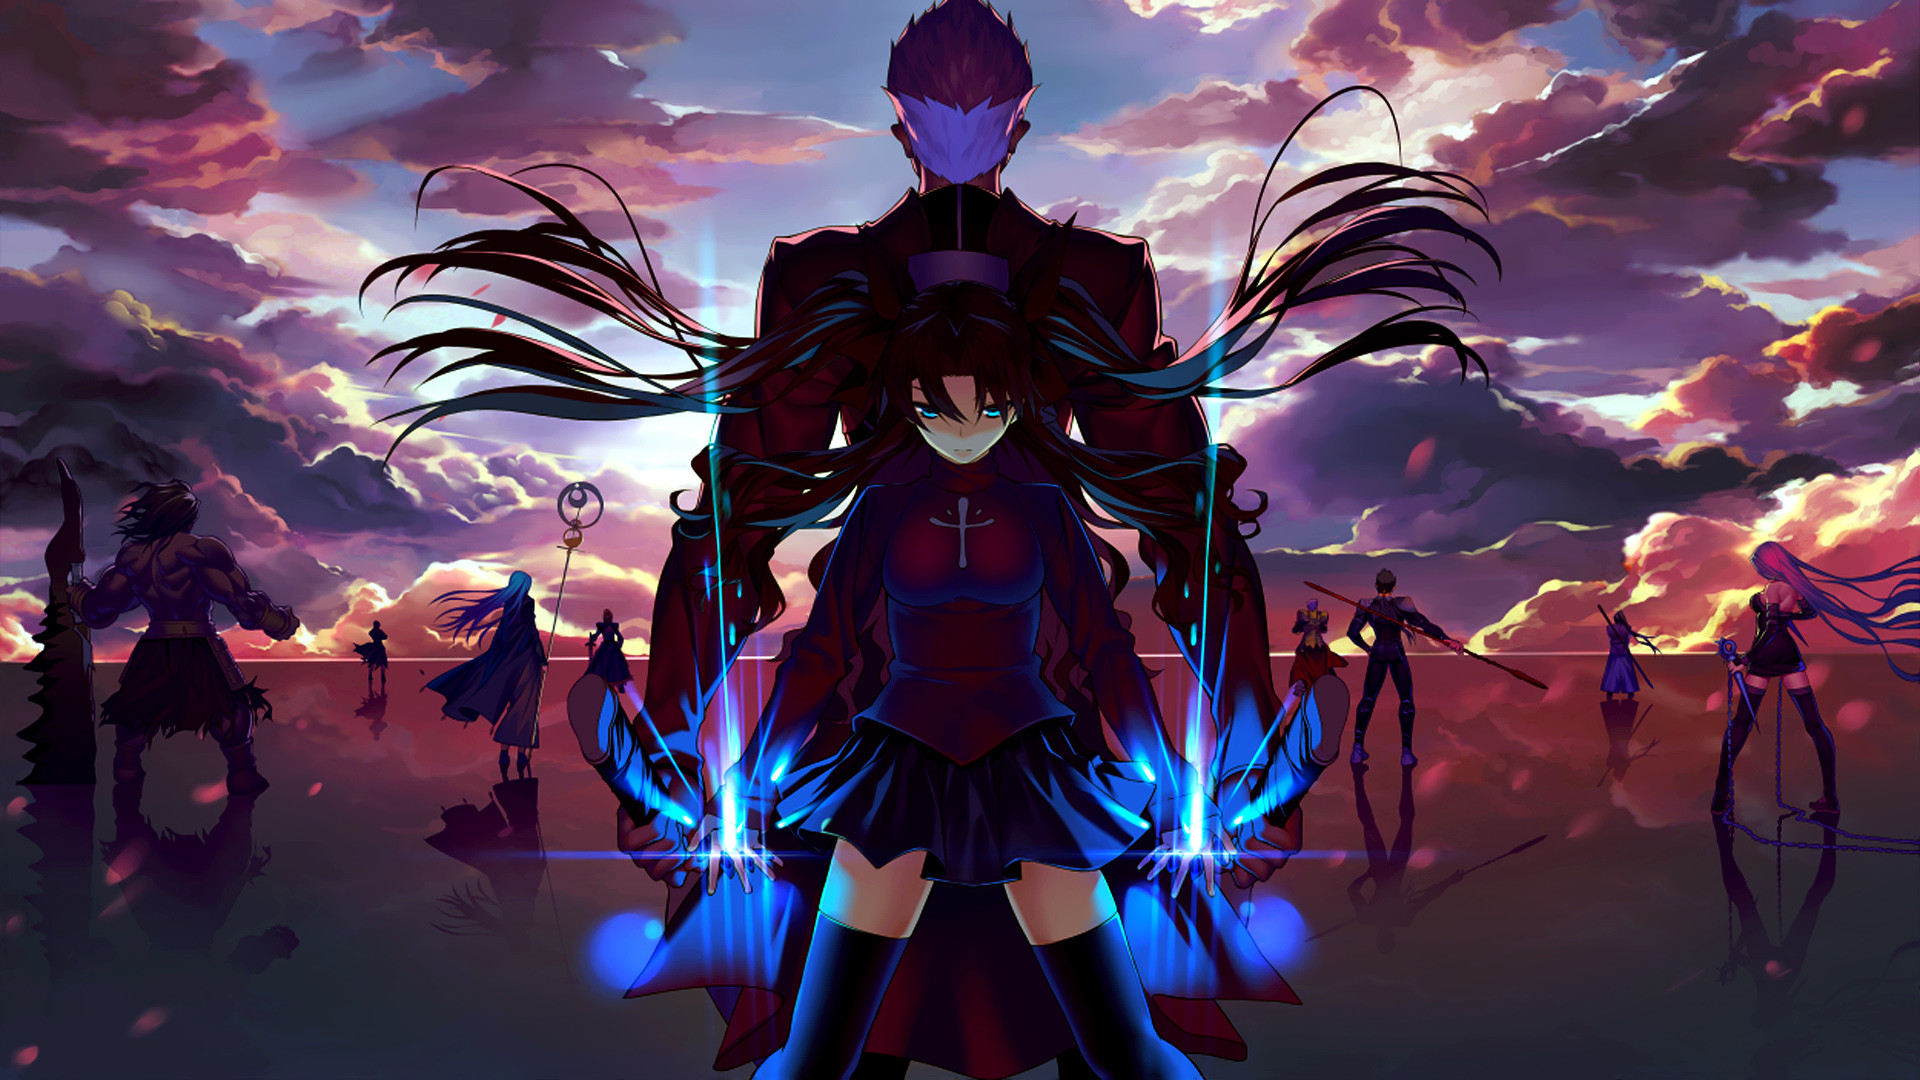 1920x1080 Fate Stay Night Unlimited Blade Work http://saqibsomal.com/2015/